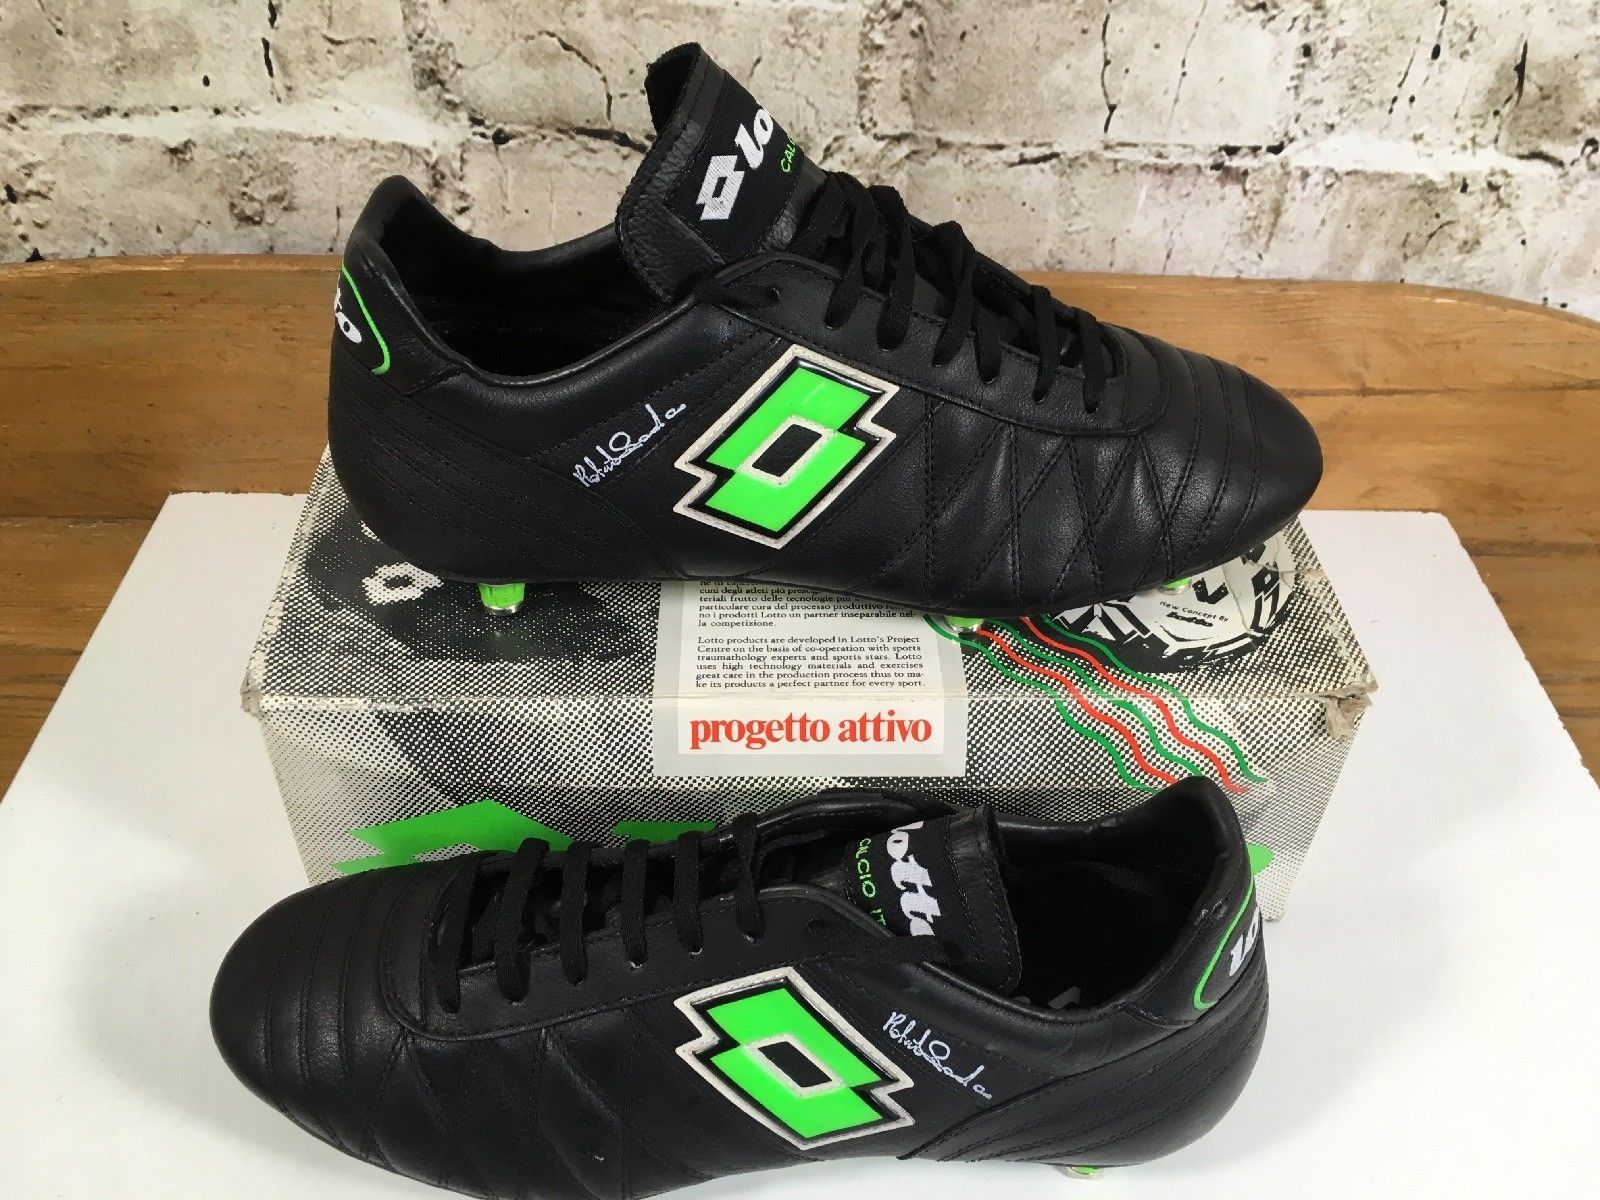 6f544991081c Vintage Lotto in Donadoni football Boots Uk8.5 US9.5 Eu42.5 Leather Soccer  Cleat | eBay